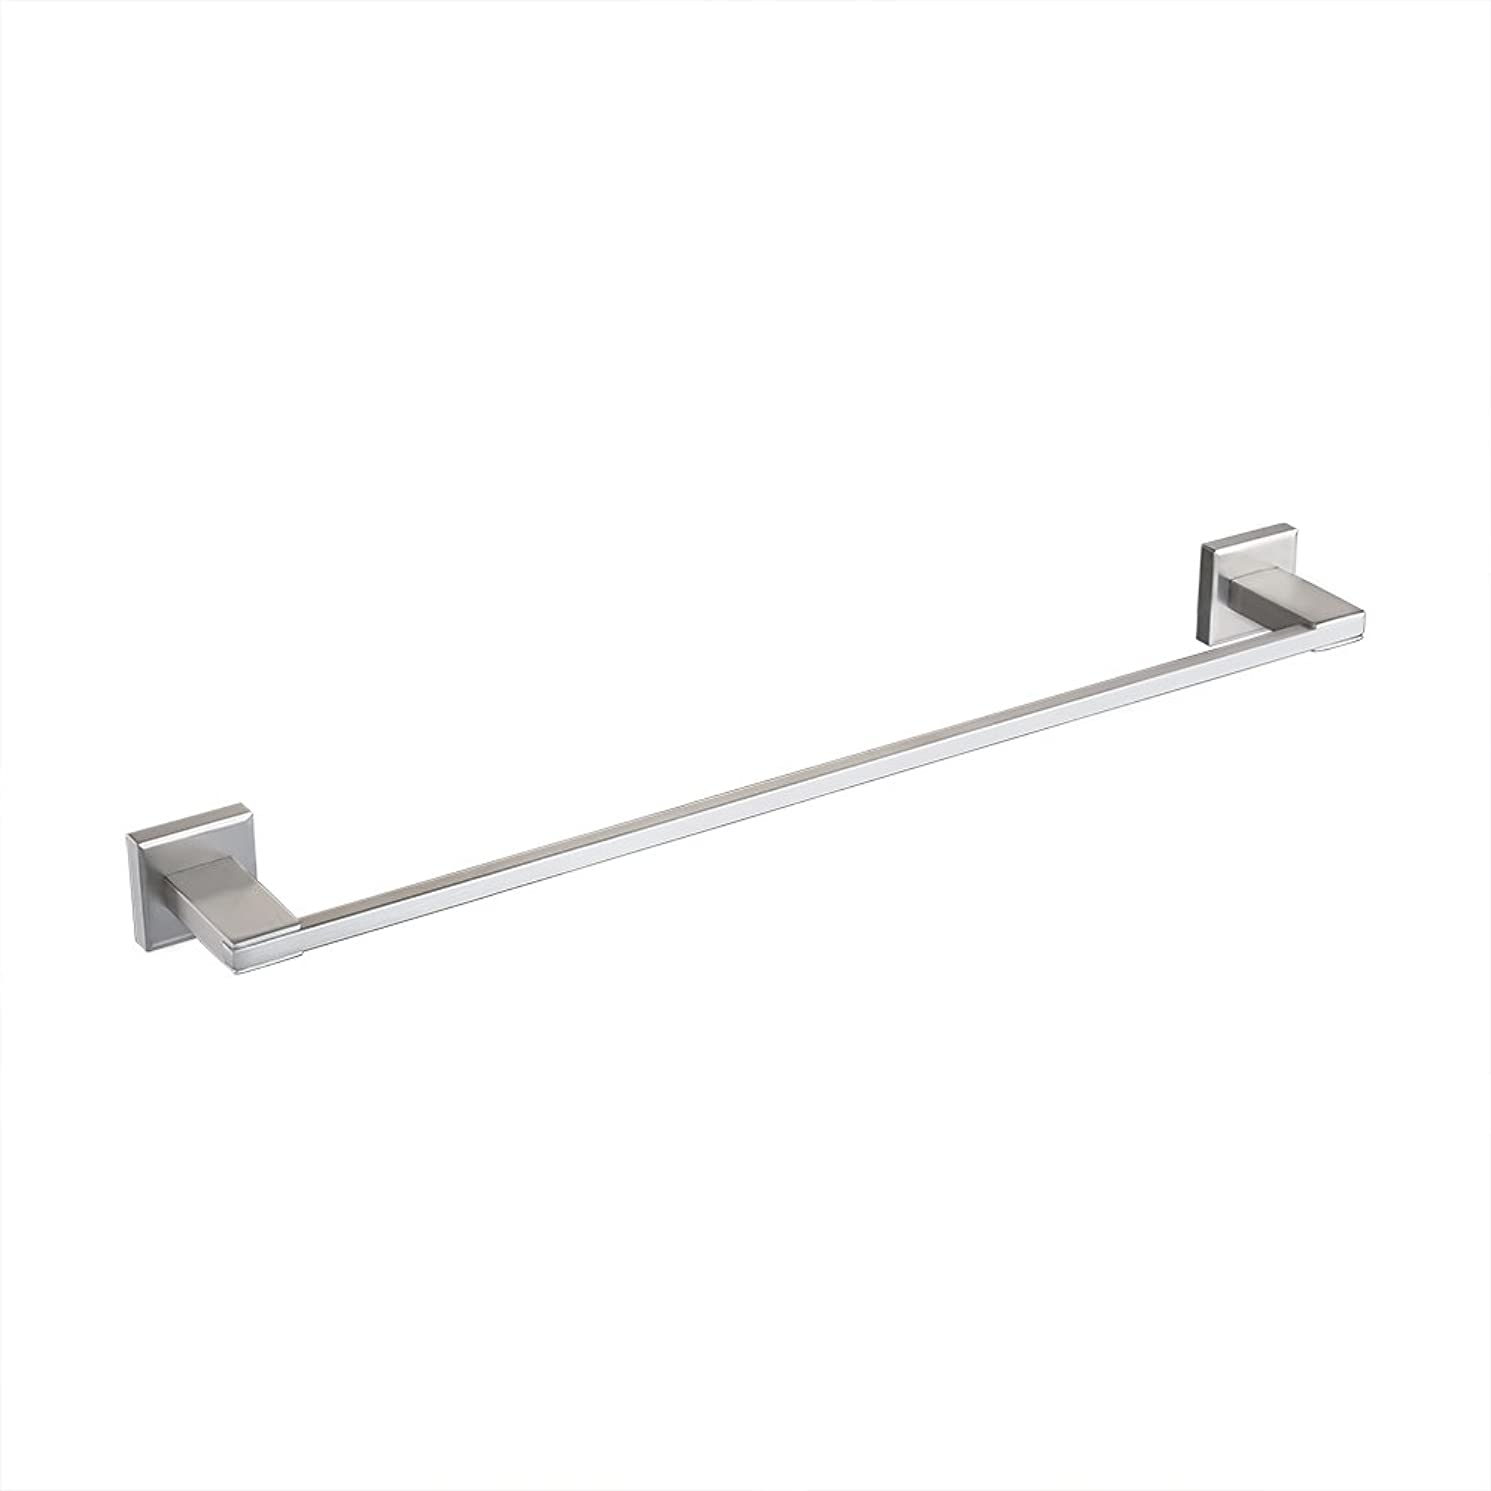 KES Bathroom Towel Bar Brushed SUS 304 Stainless Steel Bath Wall Shelf Rack Hanging Towel Hanger 23-Inch Contemporary Style, A2400S60-2